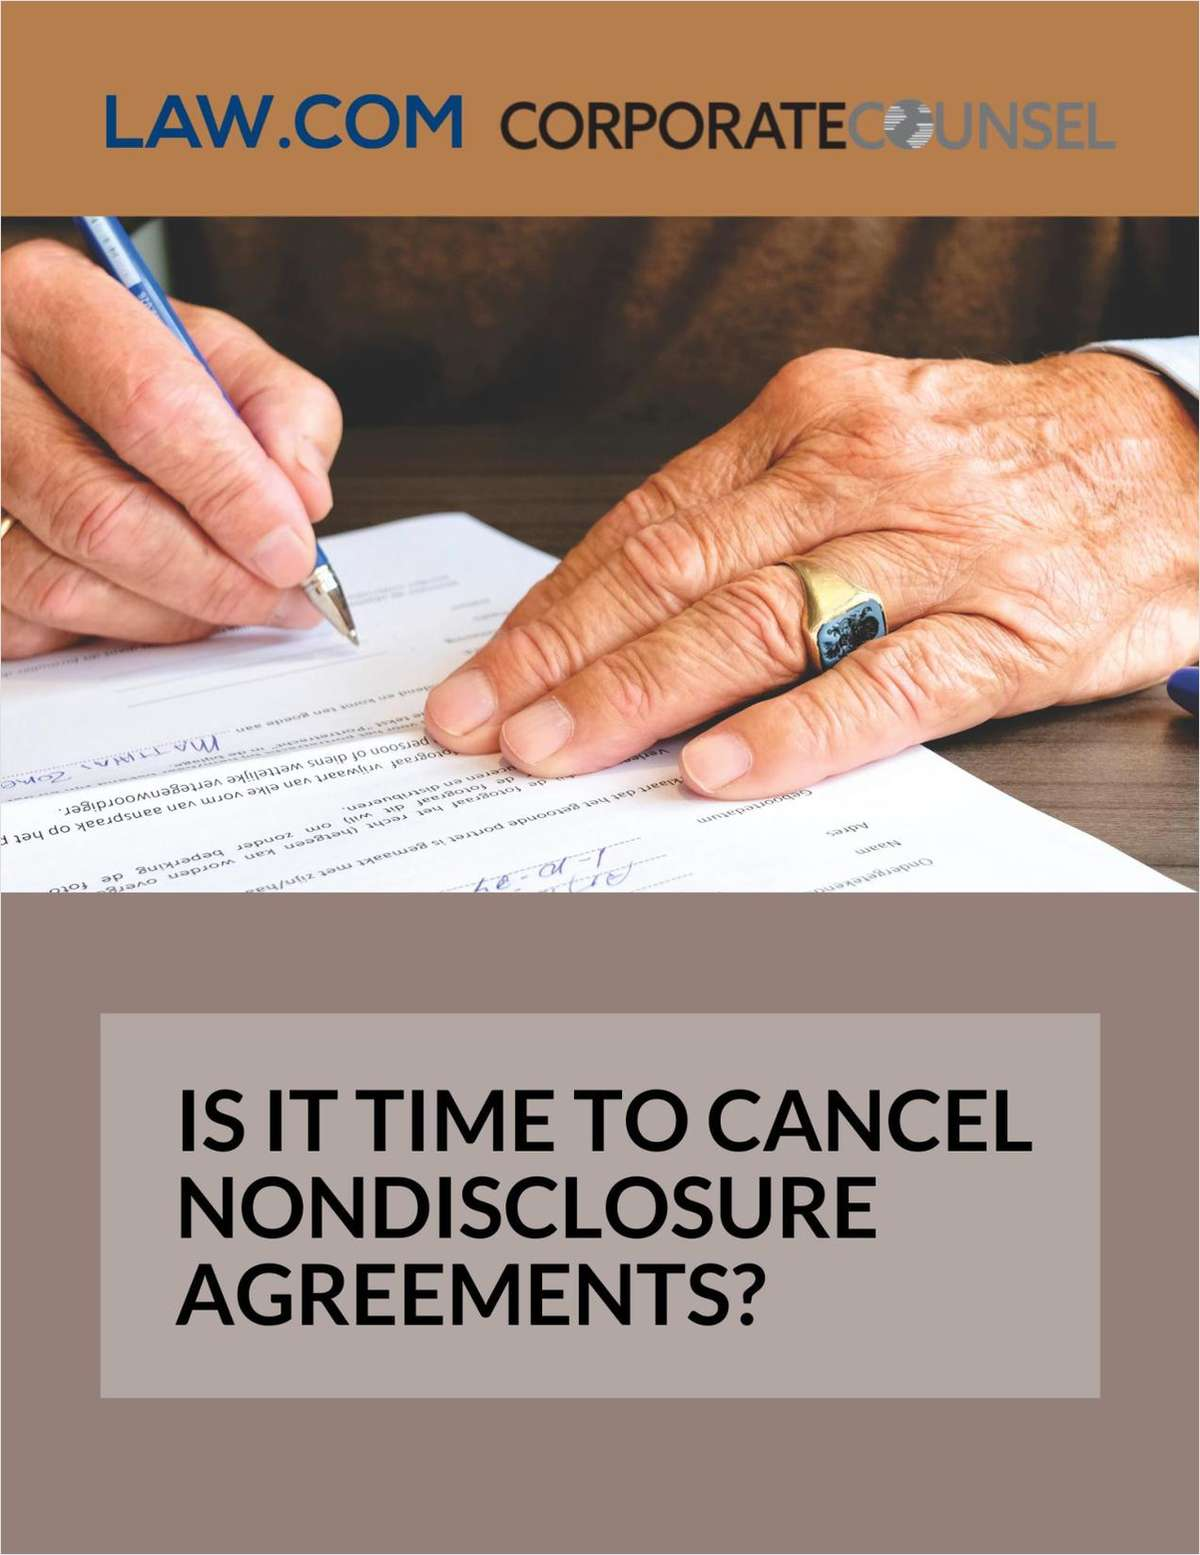 Is It Time to Cancel Nondisclosure Agreements?